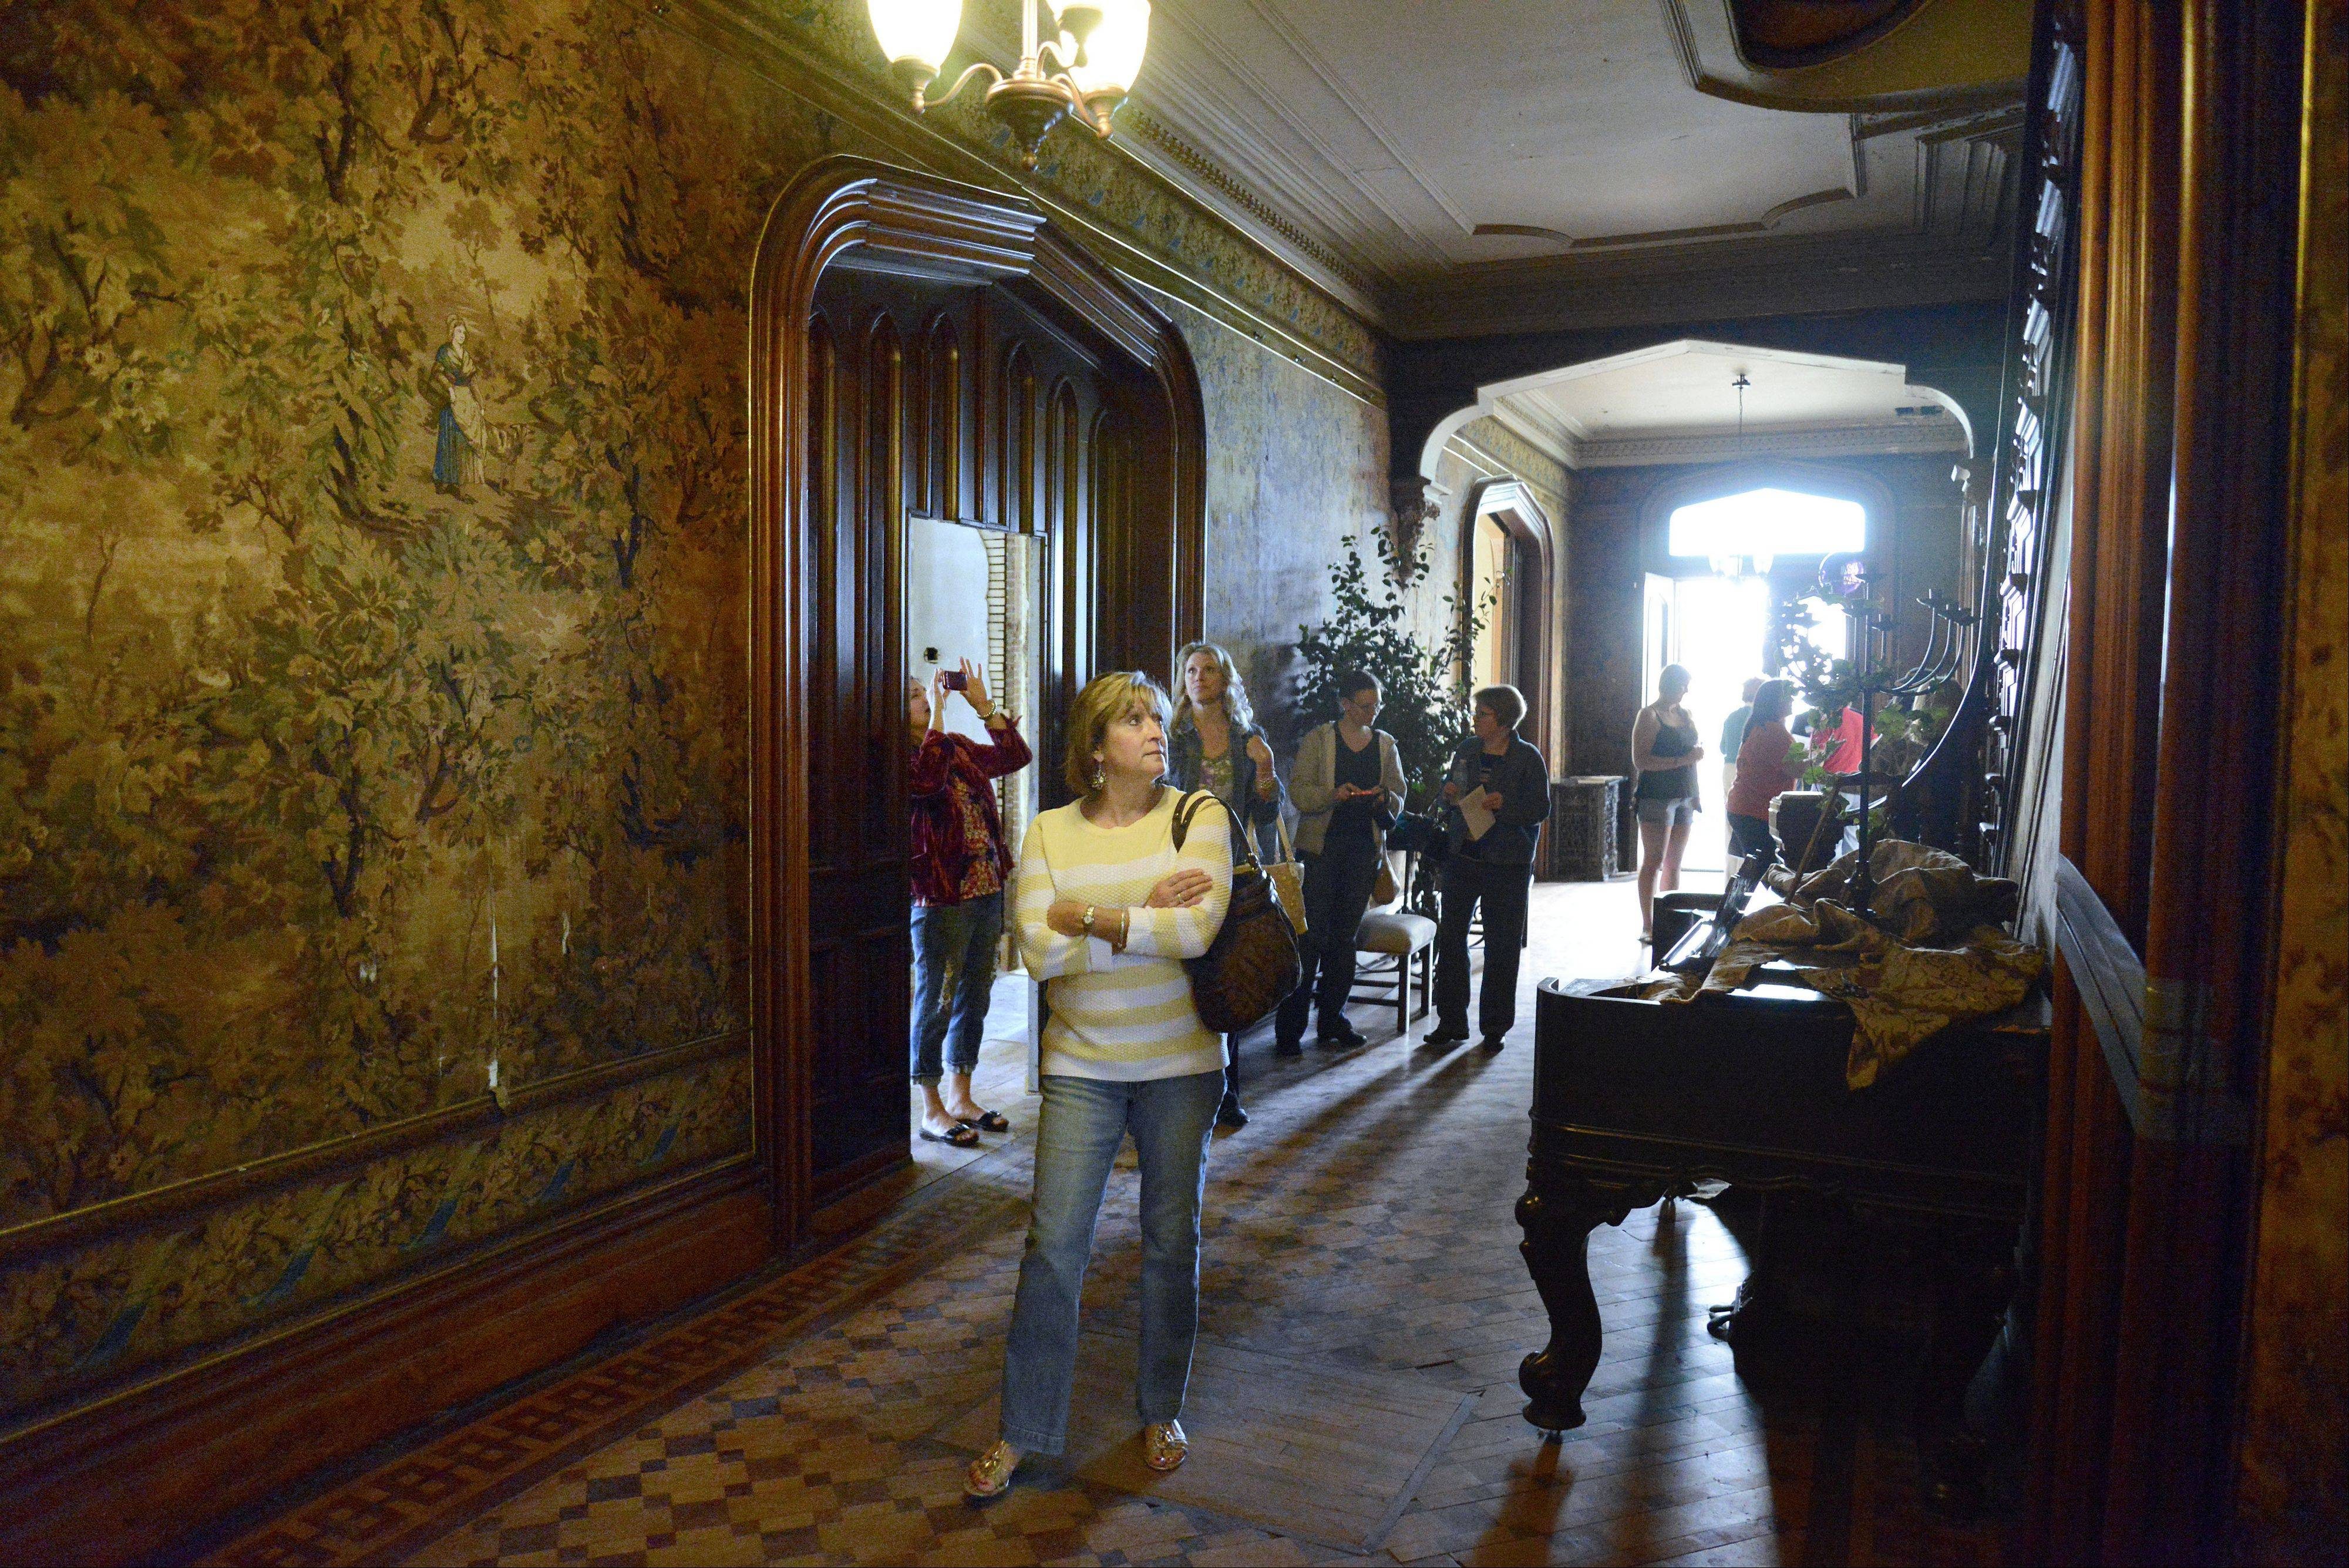 Christina Beasley of Wayne walks through the reception hall of Dunham Castle in Wayne on Saturday. Tours continue 11 a.m. to 3 p.m. today.